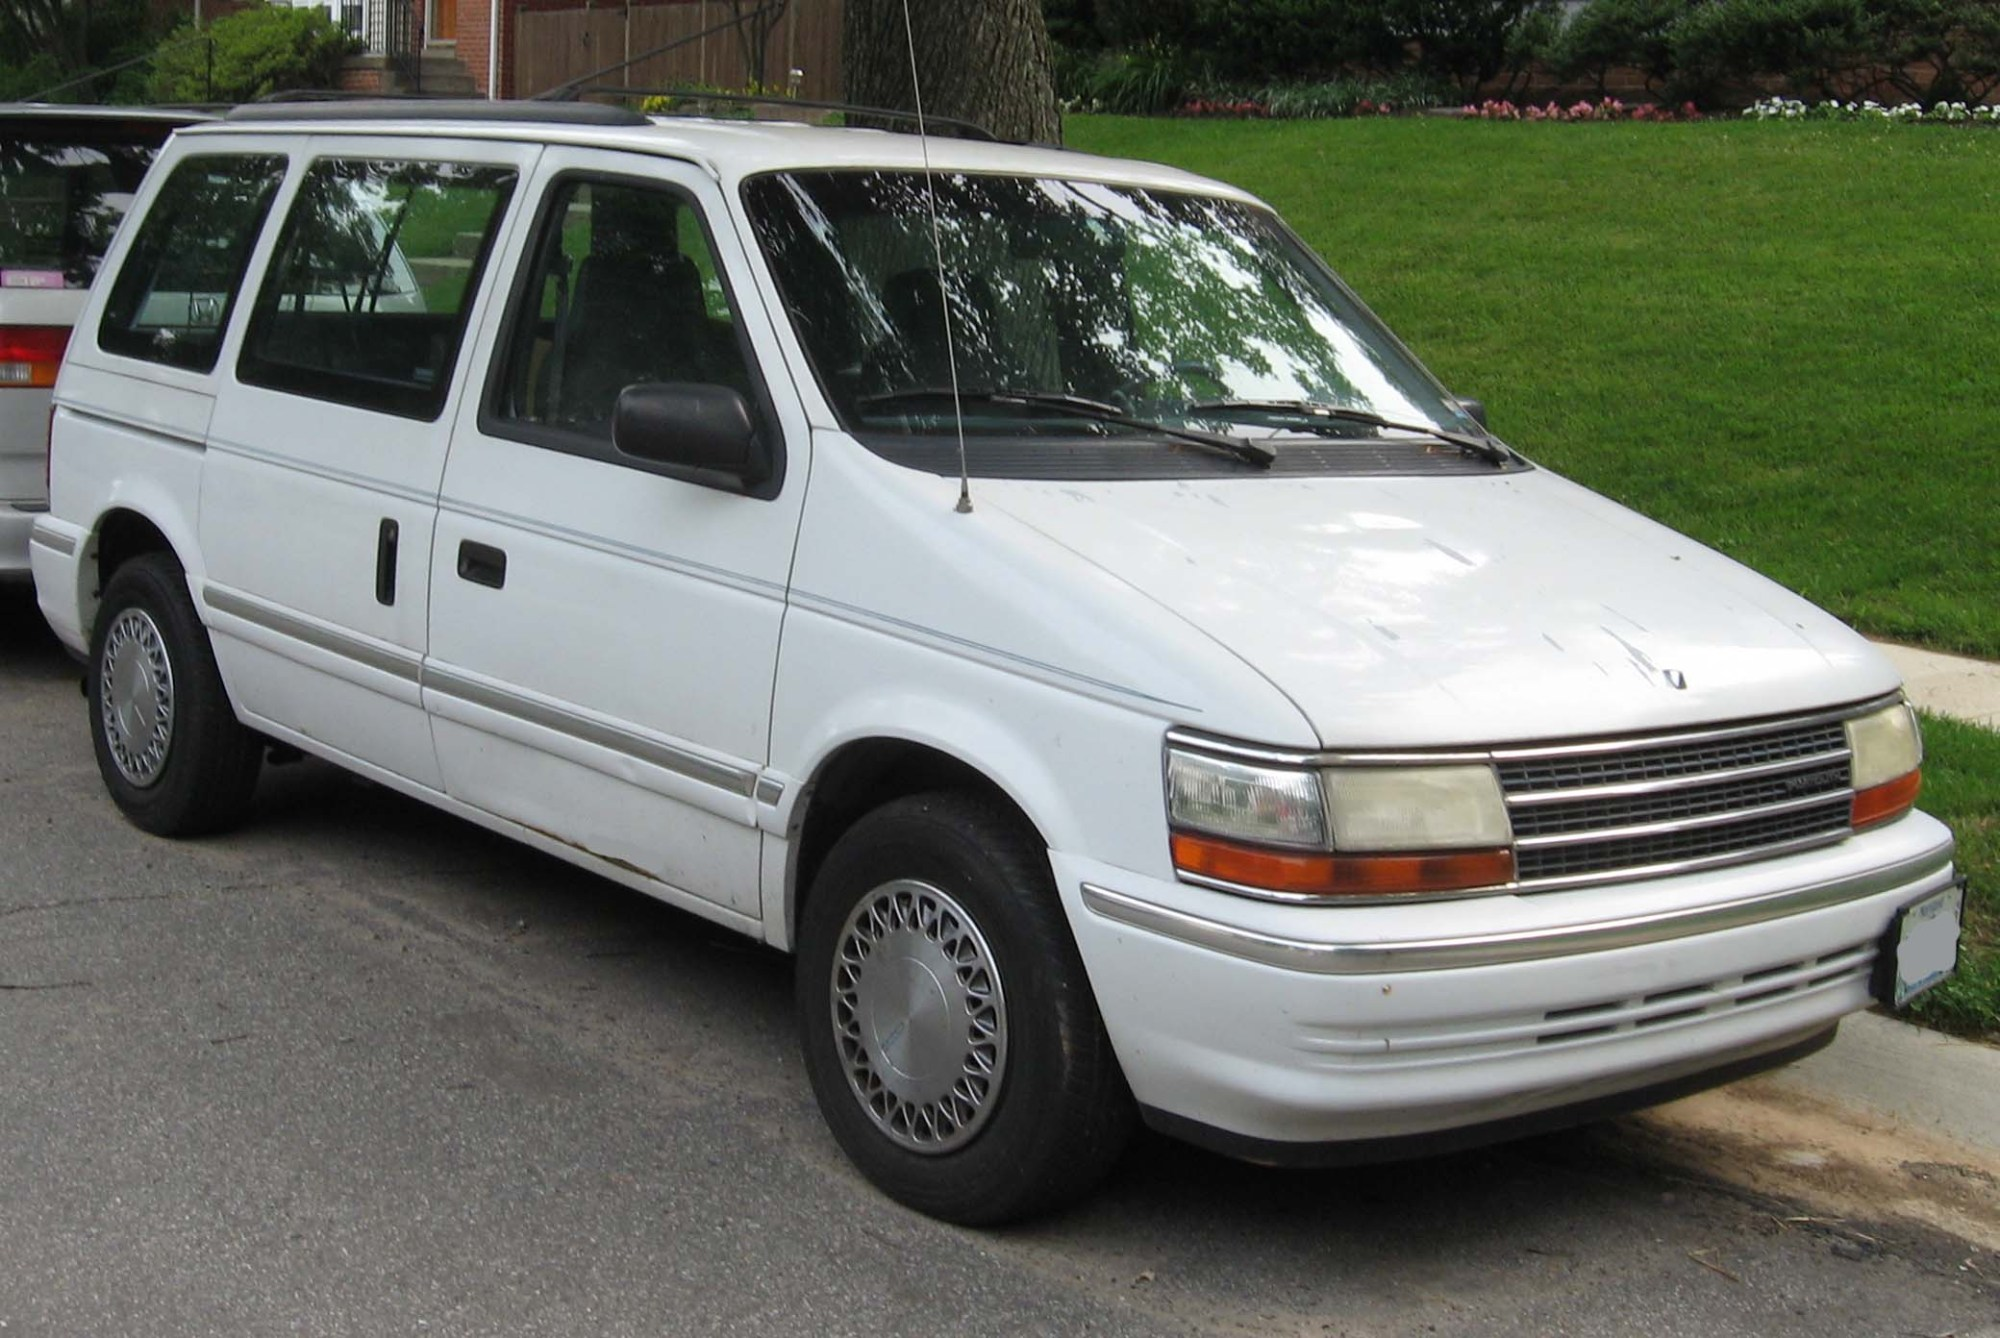 hight resolution of 1994 plymouth grand voyager wiring diagram trusted wiring diagram plymouth horizon wiring diagram 94 plymouth voyager